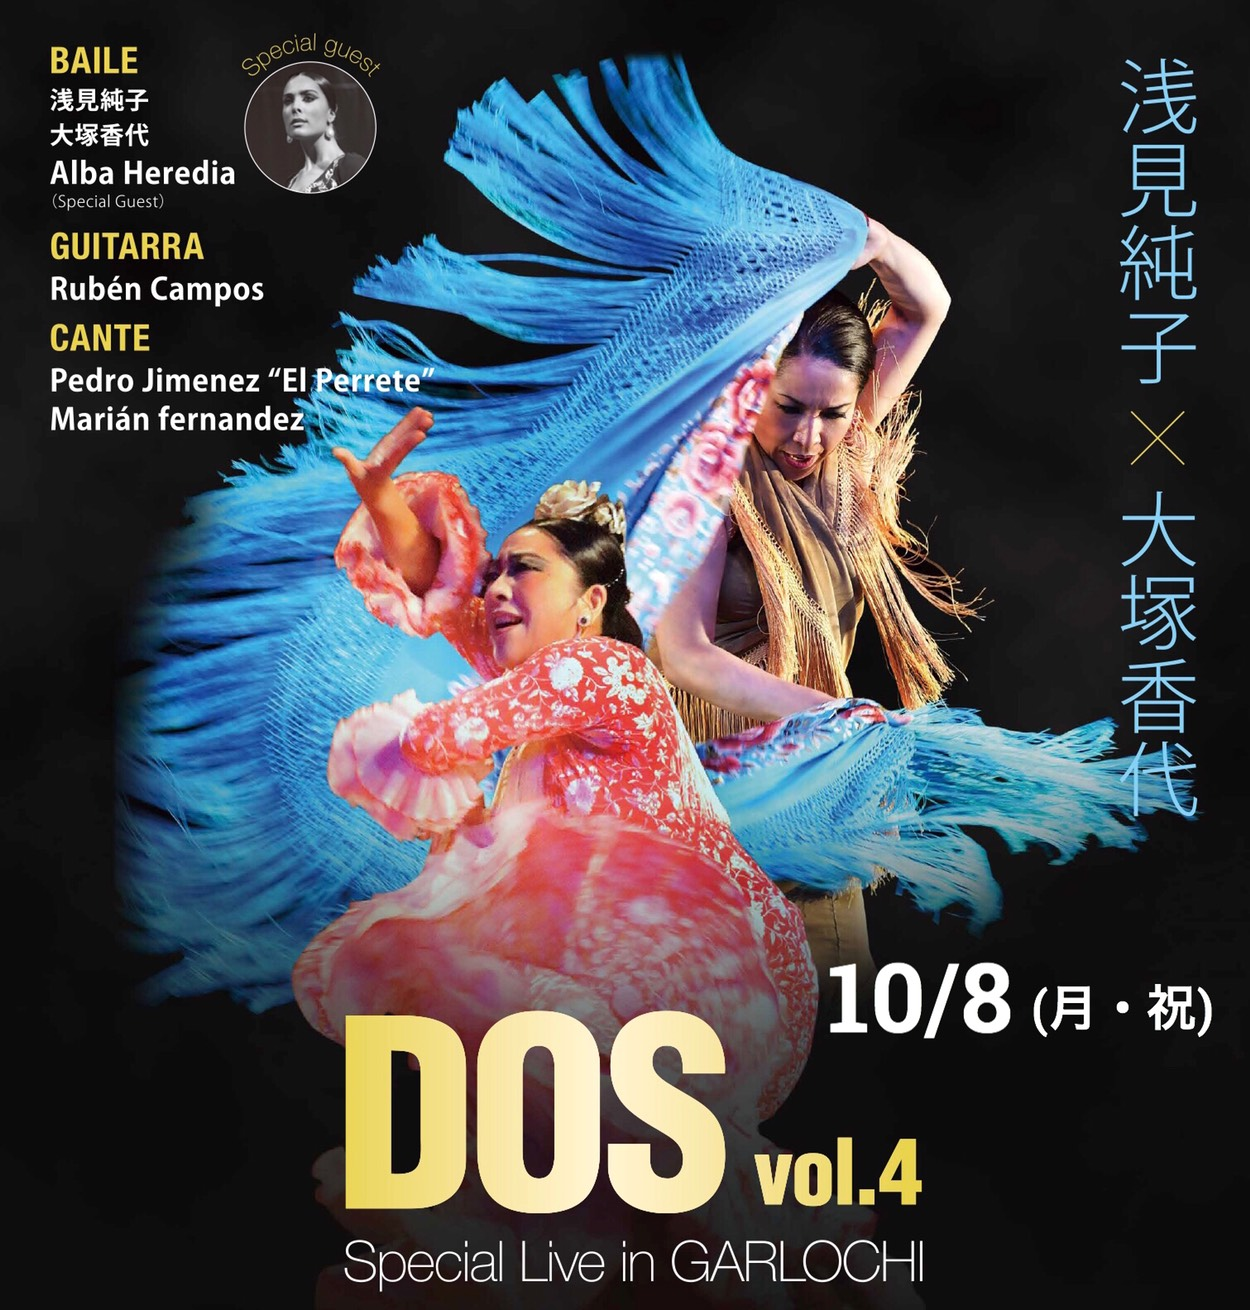 『DOS Special Live in GARLOCHI』 浅見純子×大塚香代 Special guest Alba Heredia